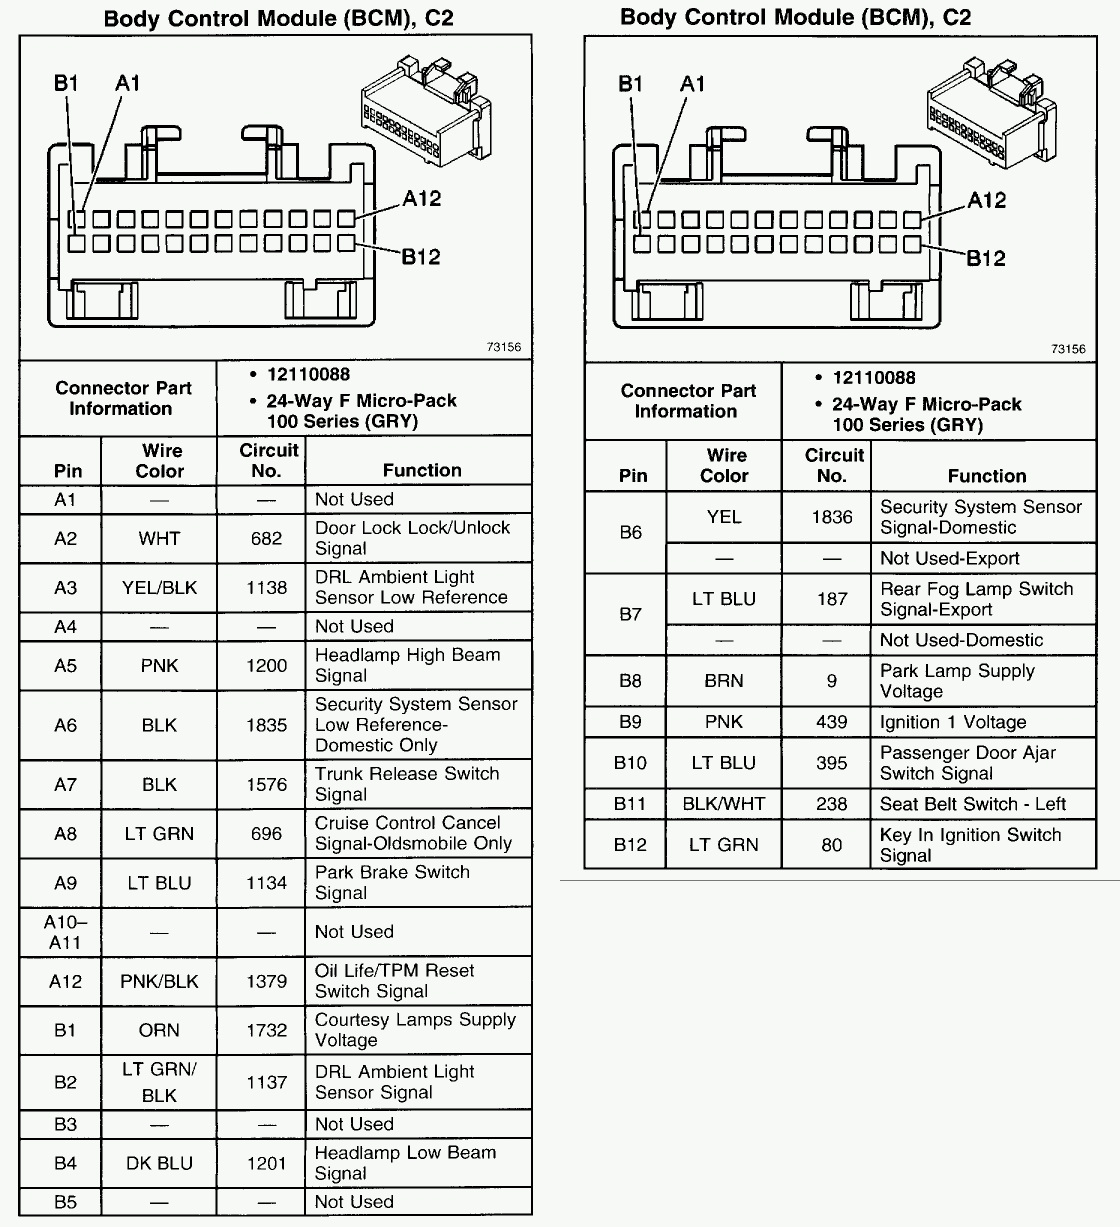 pontiac grand prix radio wiring diagram 2013 07 17 171026 2000 dic intended for 2004 pontiac grand prix parts diagram nissan 350z radio wiring diagram nissan wiring diagram gallery 1995 nissan maxima radio wiring diagram at virtualis.co